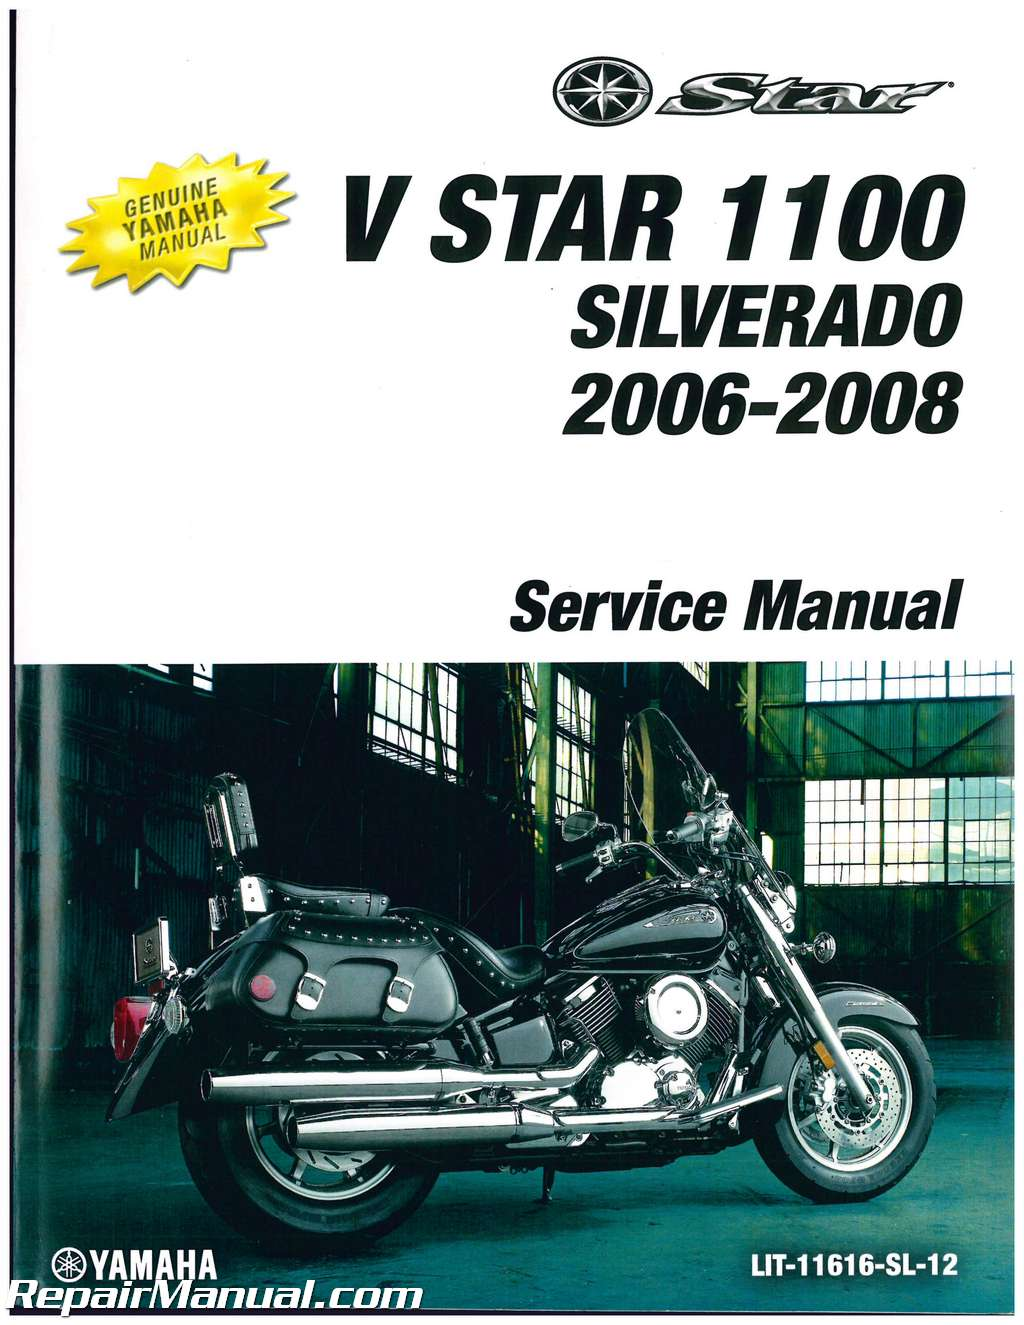 yamaha motorcycle manuals page 27 of 117 repair manuals online rh repairmanual com 2006 Yamaha Roadliner Review 2006 Yamaha Stratoliner Specs